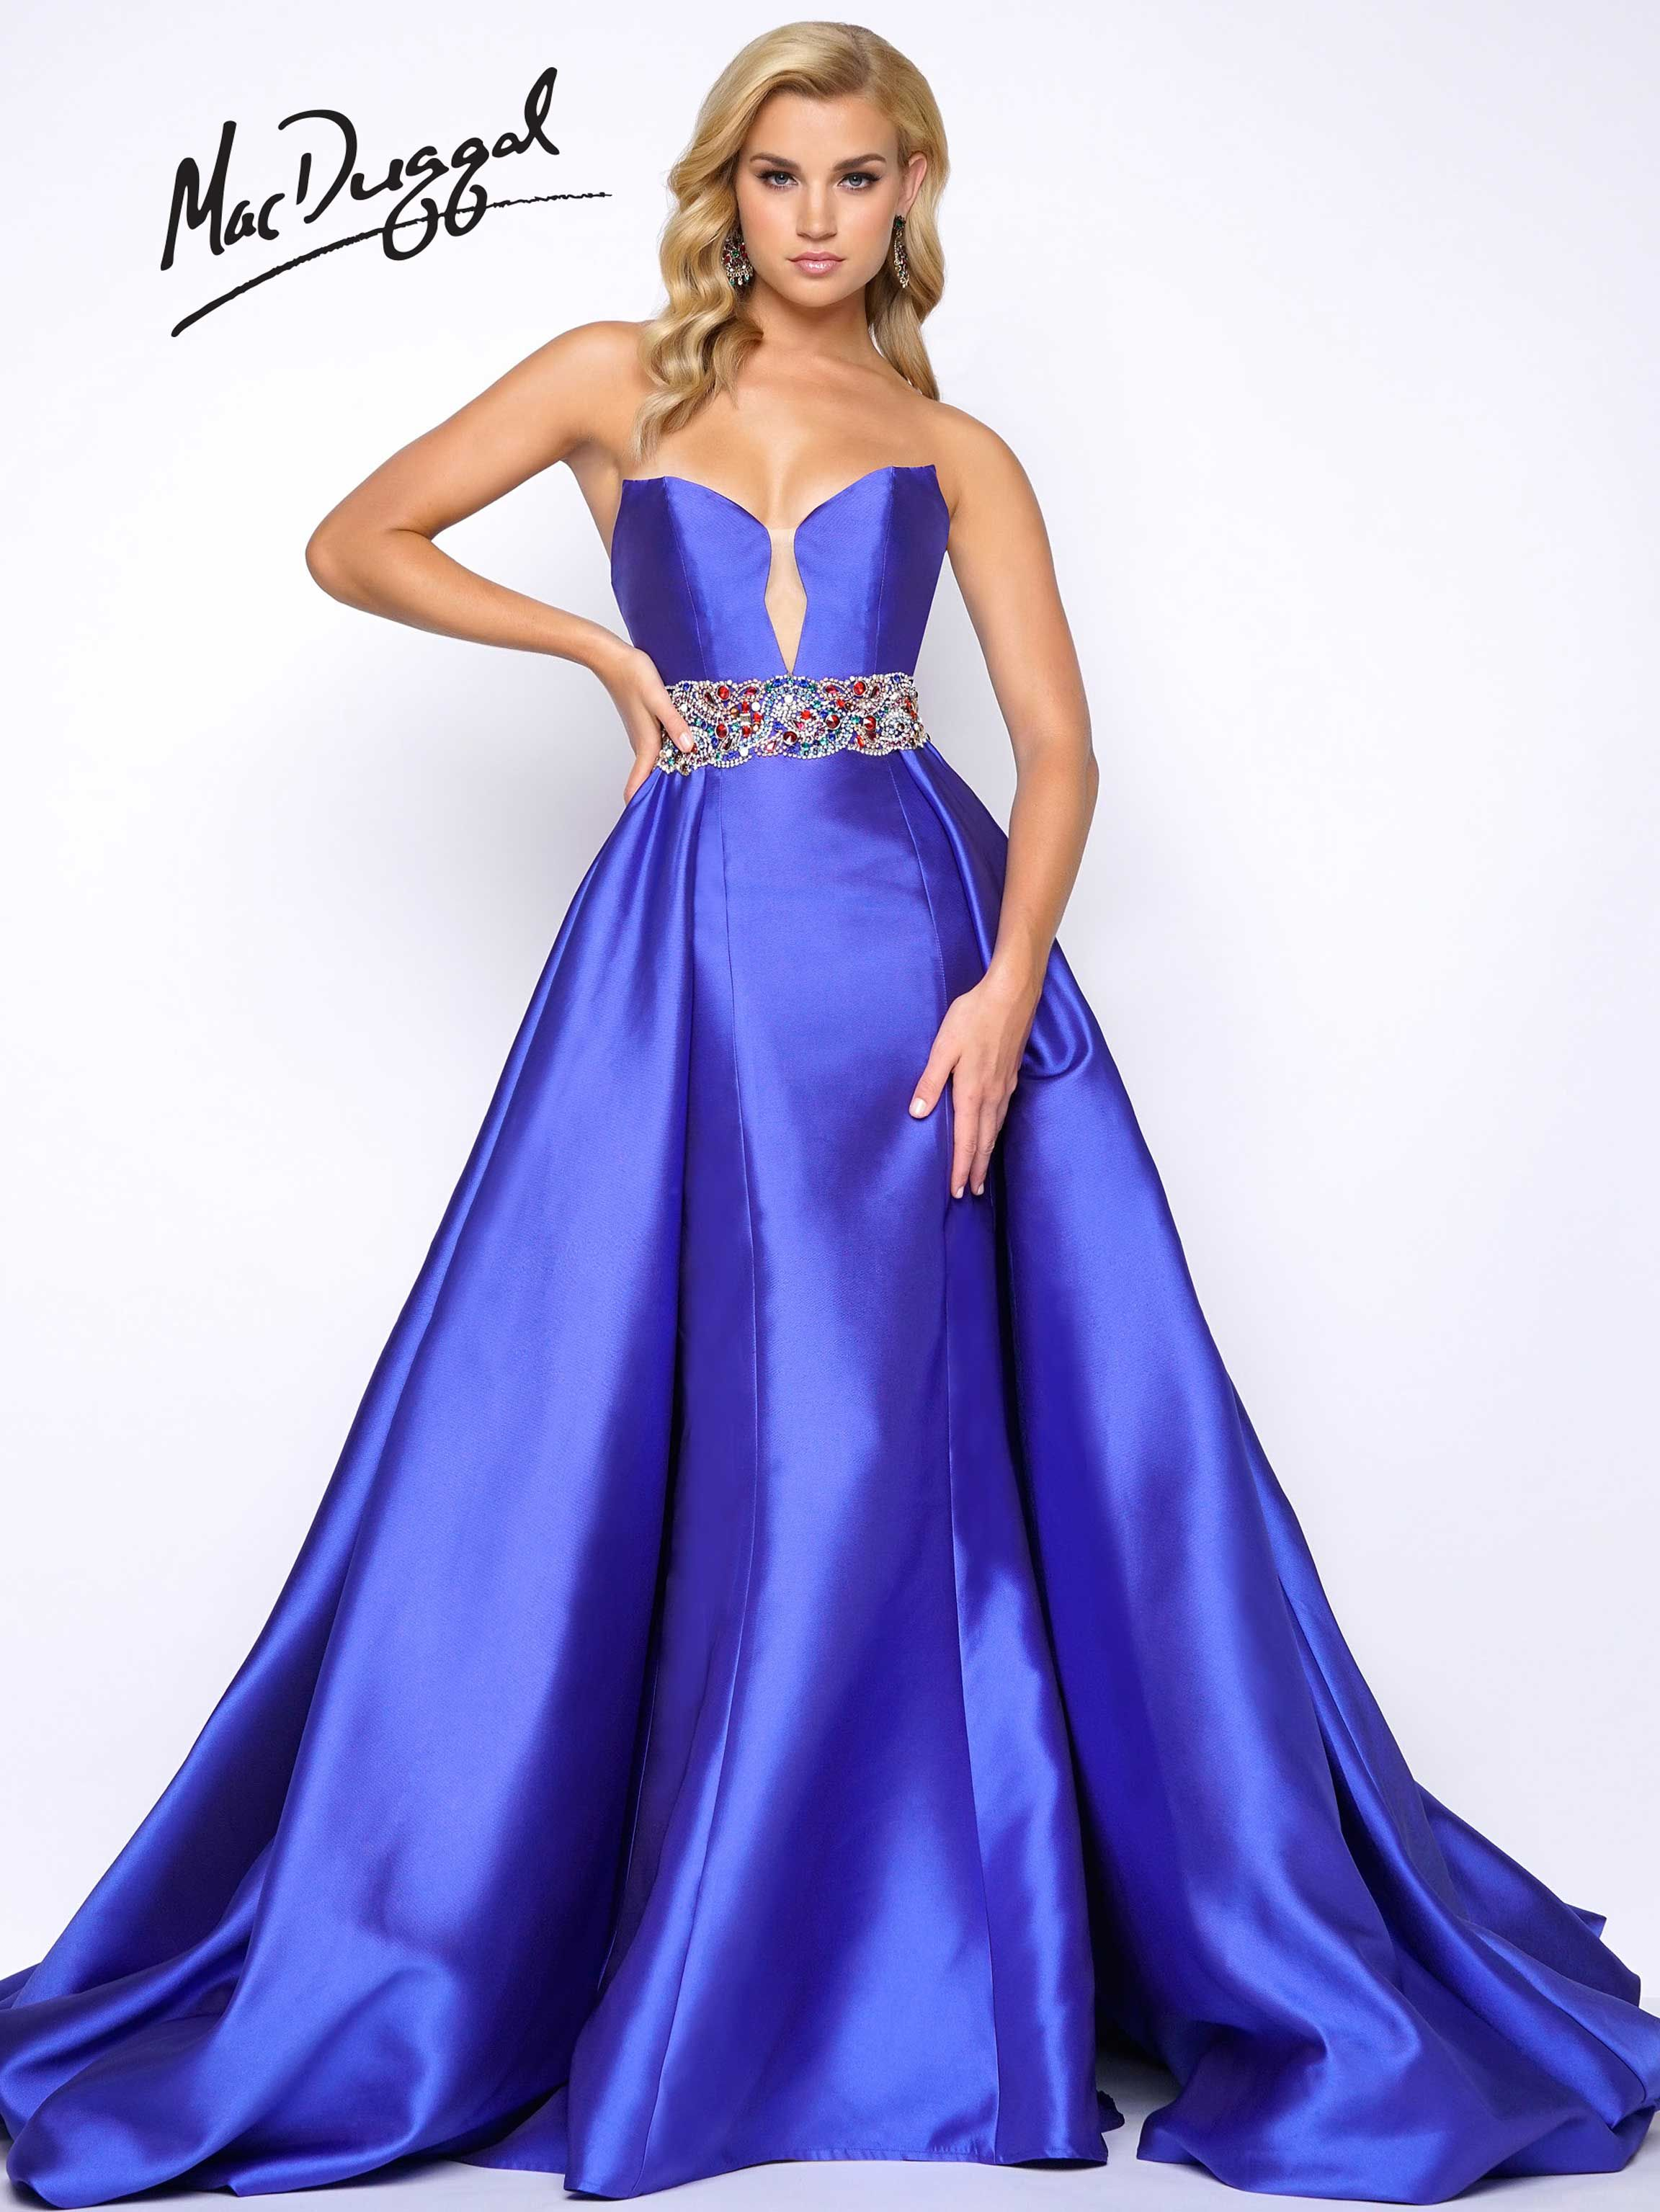 Strapless, sweetheart neckline, satin, column prom dress with full ...